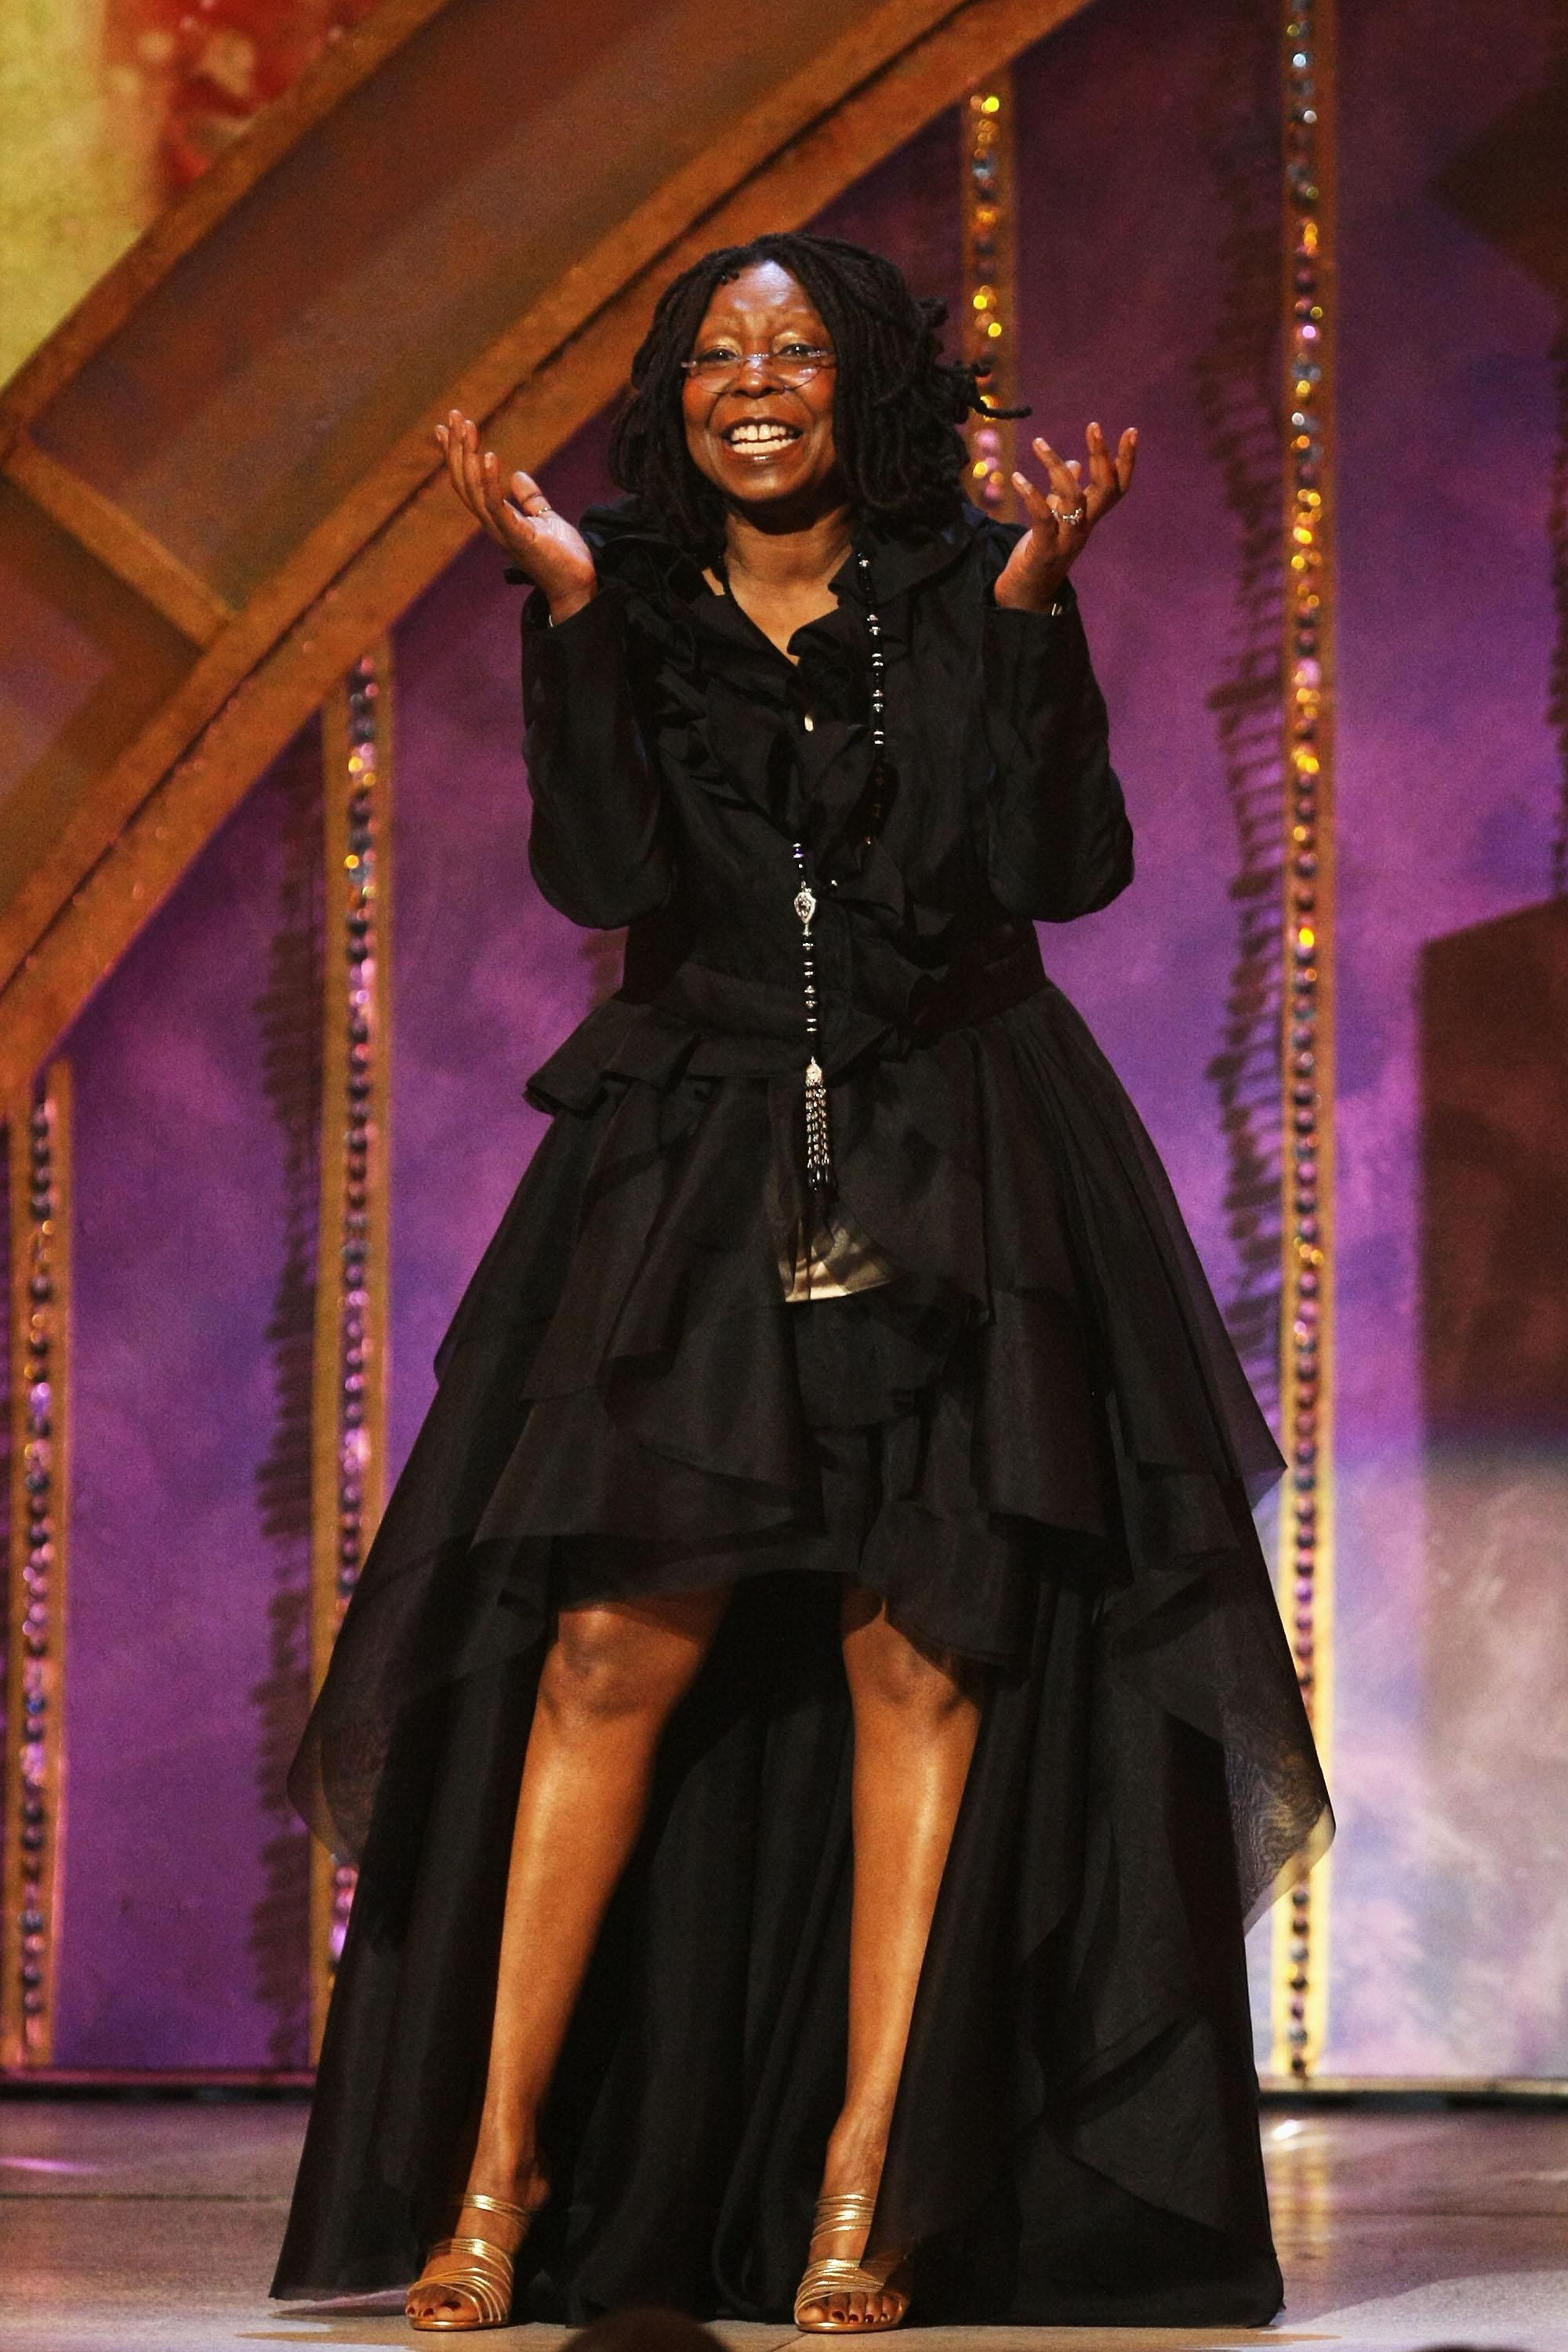 Whoopi Goldberg images Whoopi Goldberg HD wallpaper and background ...